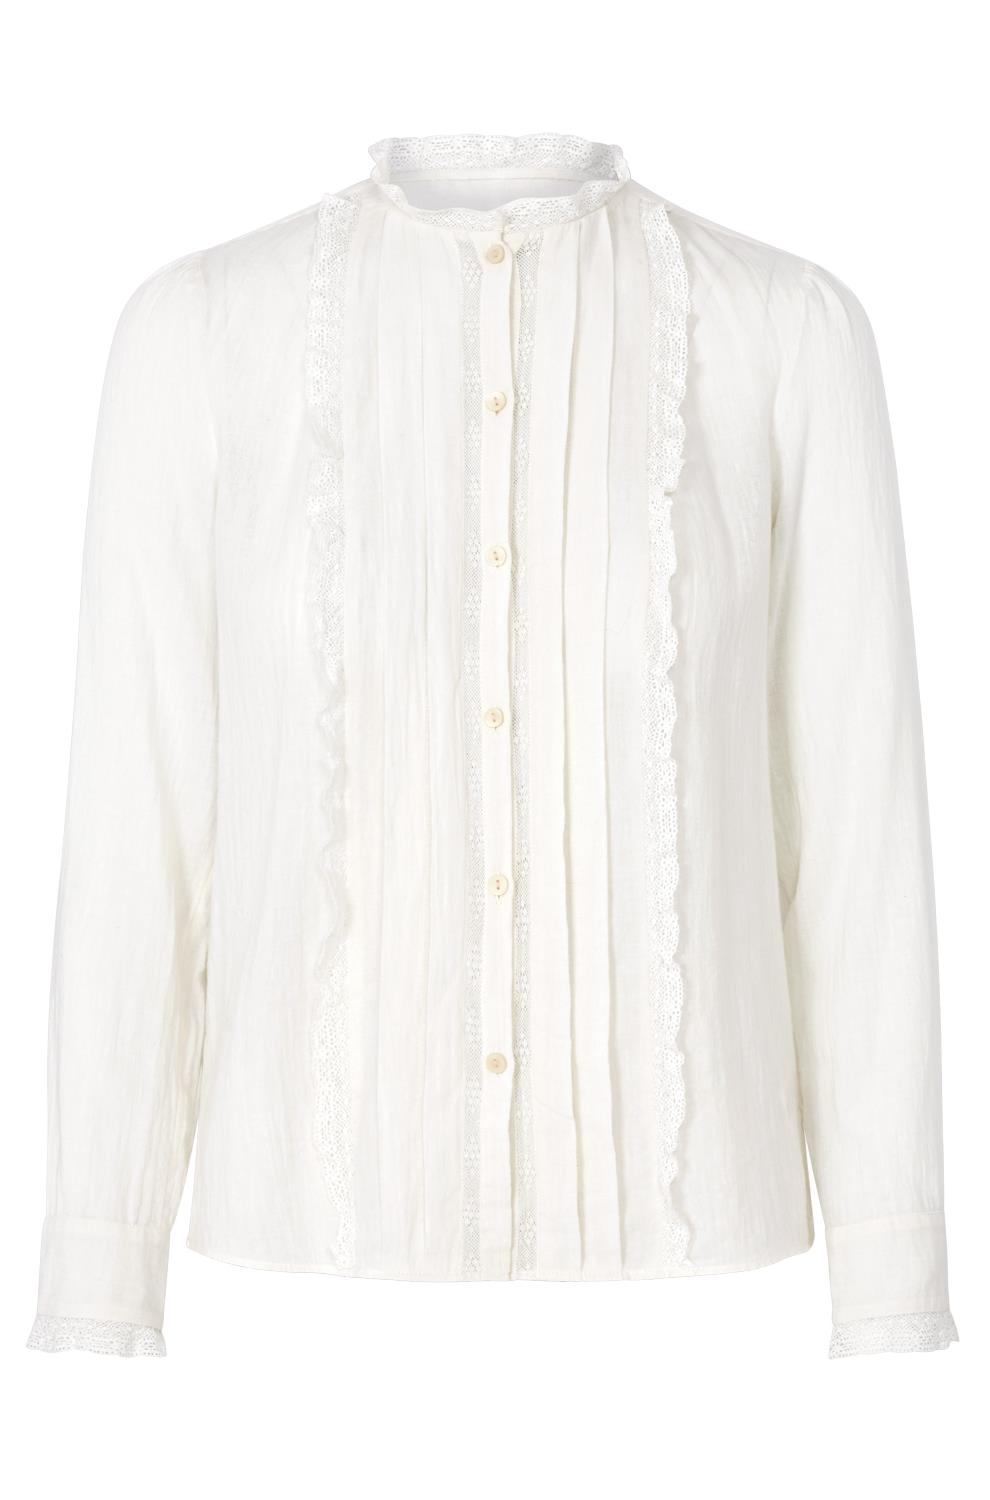 Rebecca Taylor La Vie   Long Sleeve Gauze Lace Top in chalk, £95 (used to be £175) -  I have never regretted buying white victorian style (ok, let's say inspired)lace. You can never go wrong with that sort of shirt, tux style at work or with blue flared denims during the weekends.